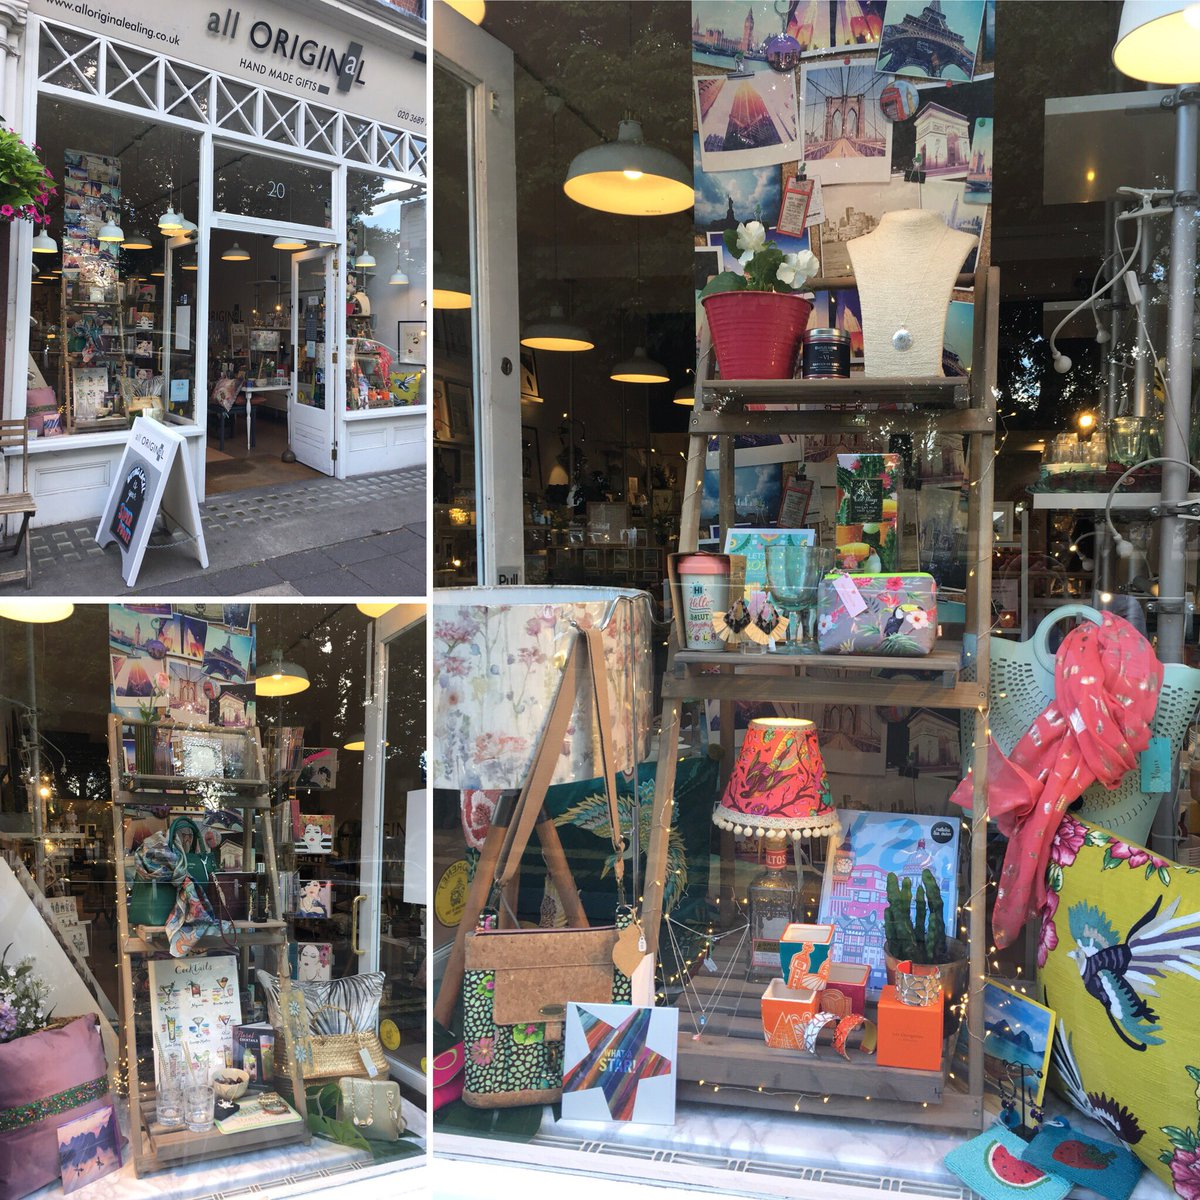 Fabulous window displays as always from Jane of @AllOriginalEali   Don't let the weather get you down, we'll add the sunshine to your day 🌞👍  #Ealing #shoplocal #shopindie @IndieRetailUK https://t.co/OaUIX8hQq5